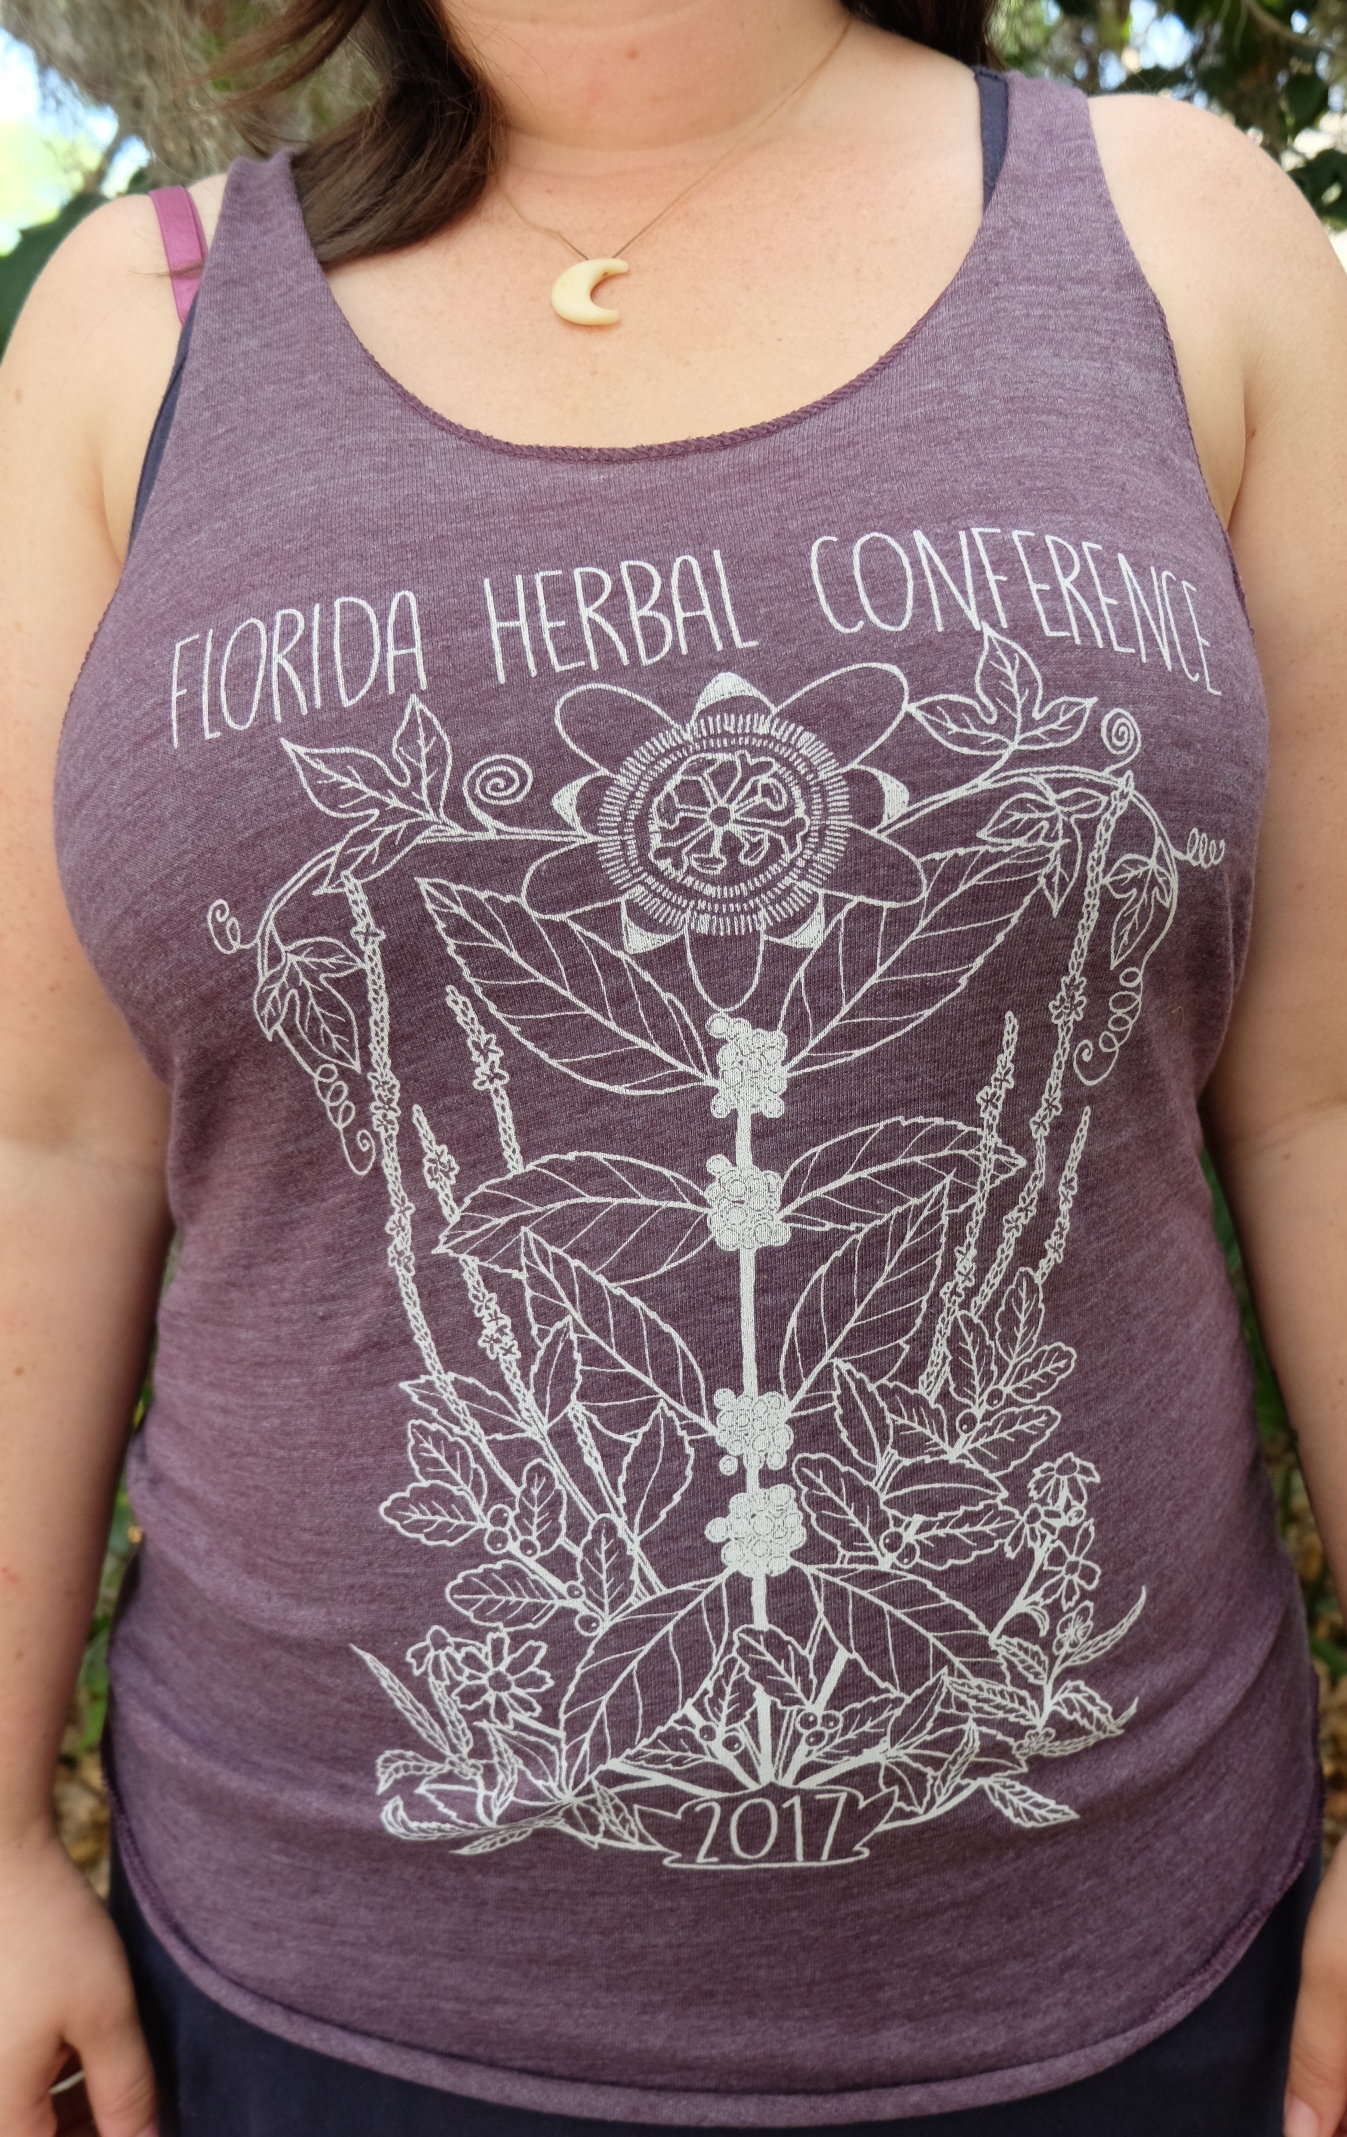 2017 Florida Herbal Conference Ladies Tank